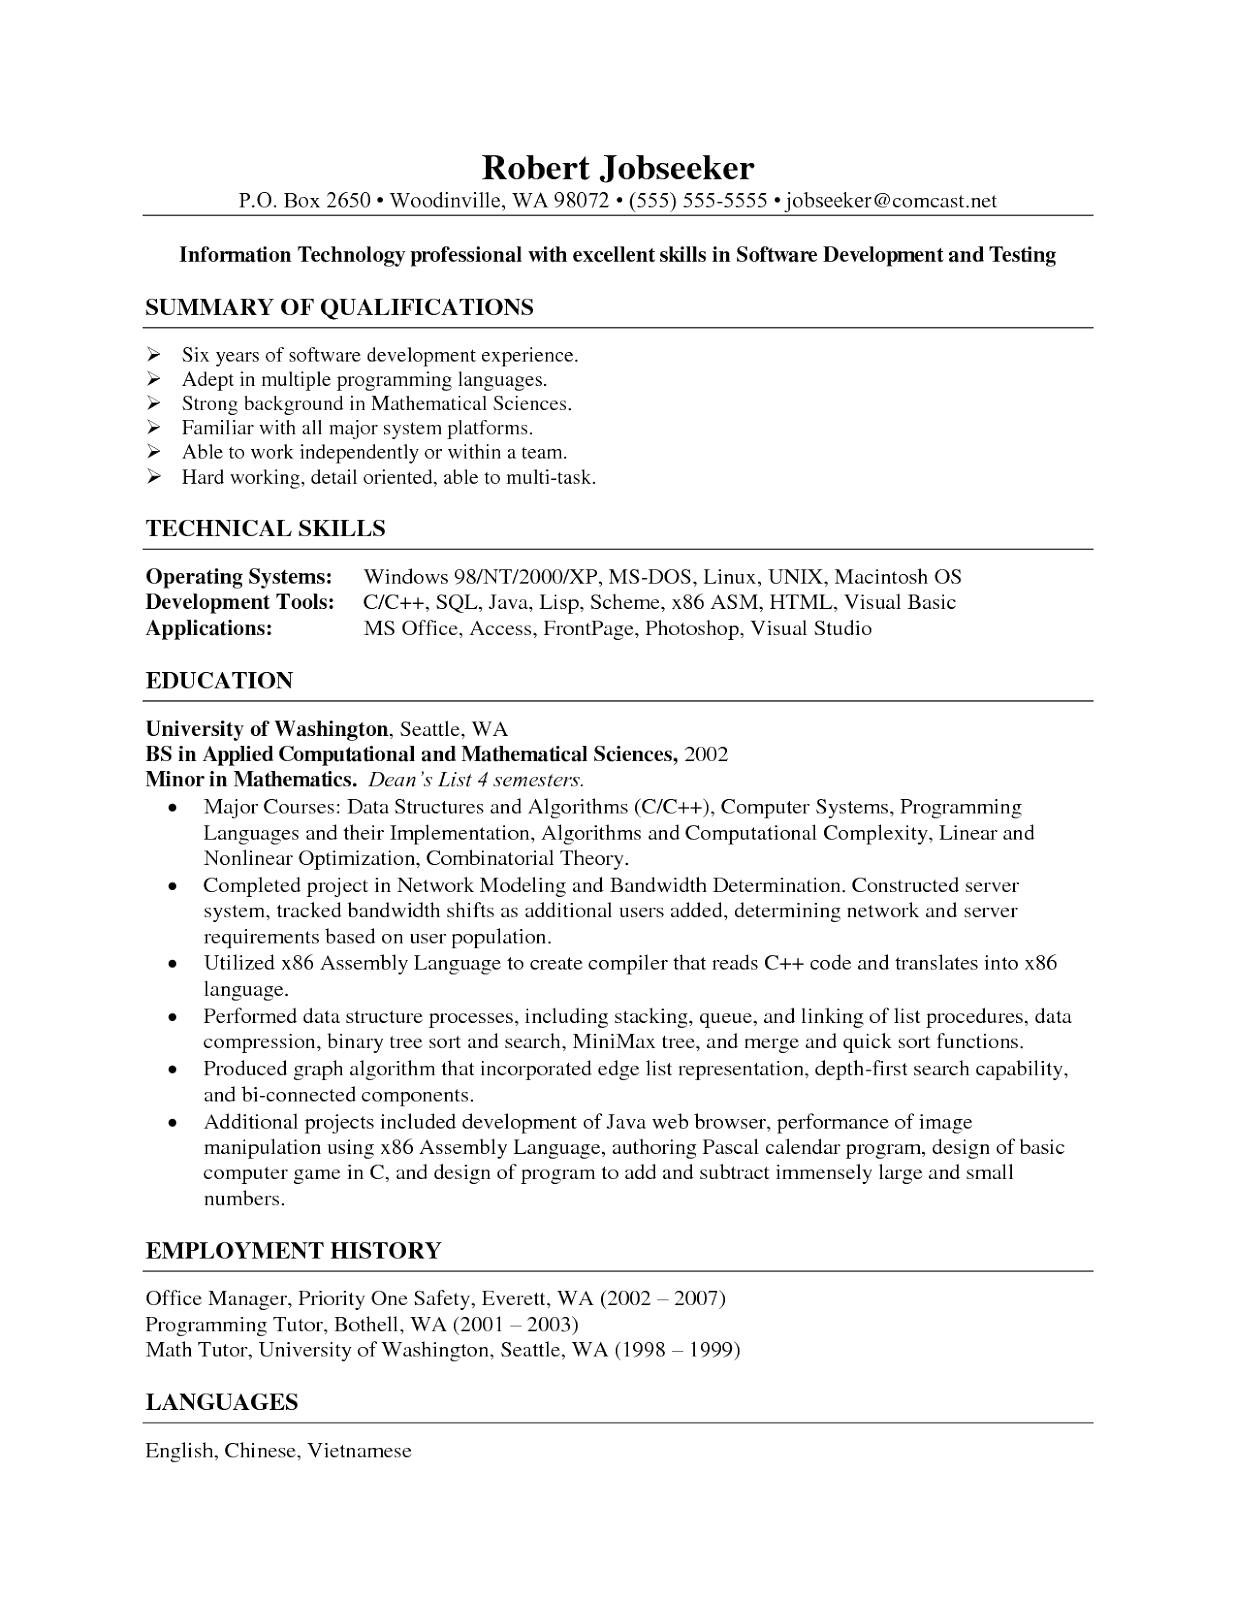 sample resume for manual testing professional of 2 yr experience unique 1 year experience resume format for manual testing awesome 50